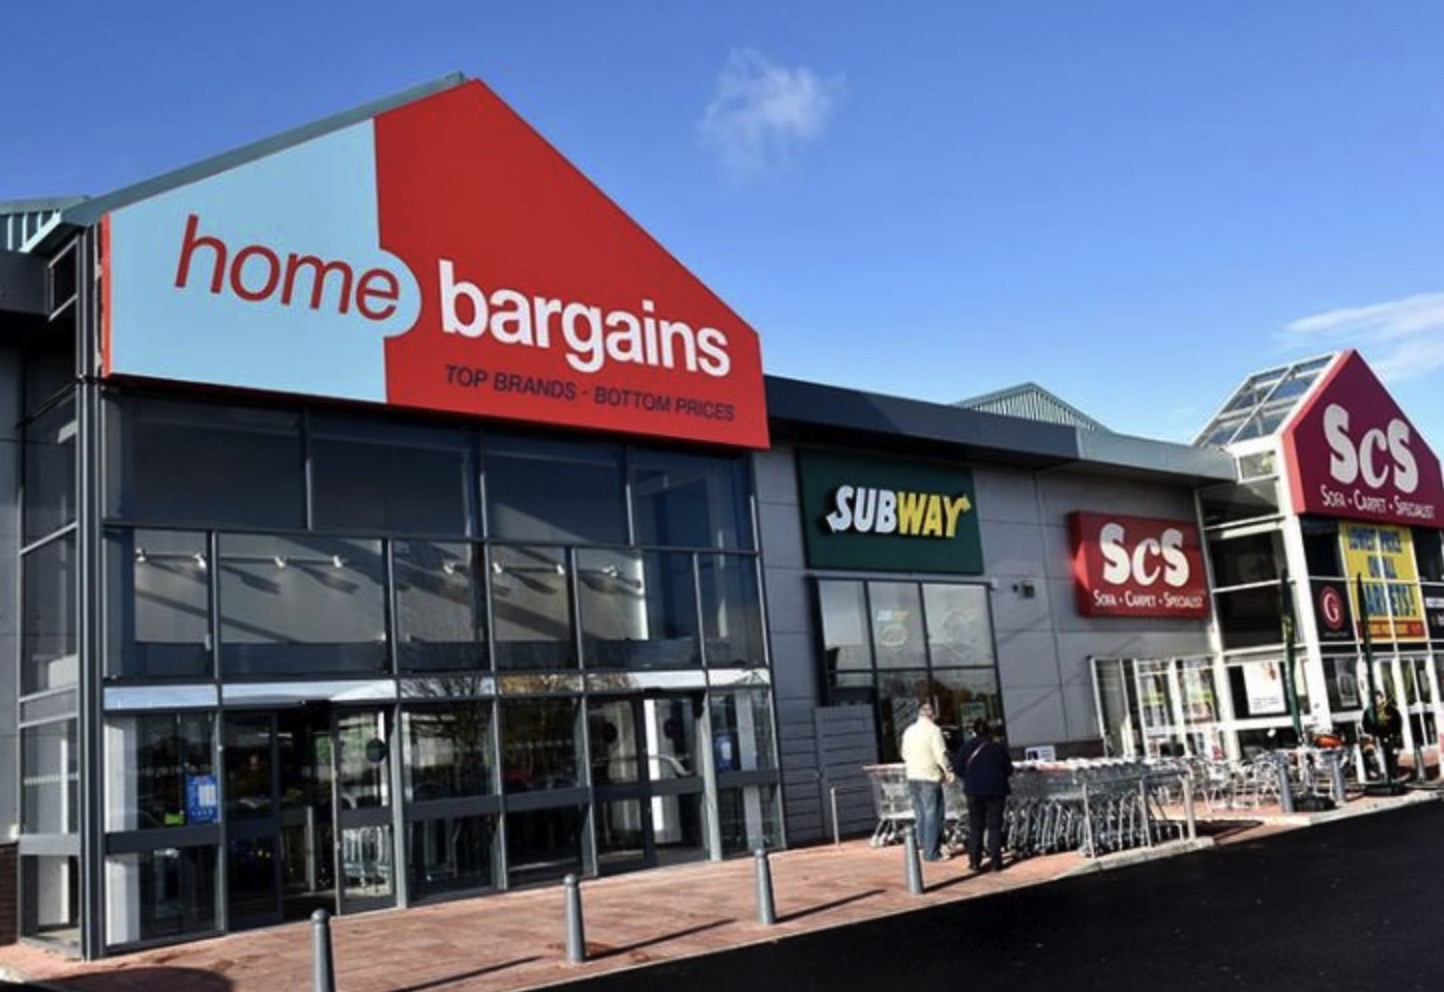 Home Bargains turnover reaches £2.5bn